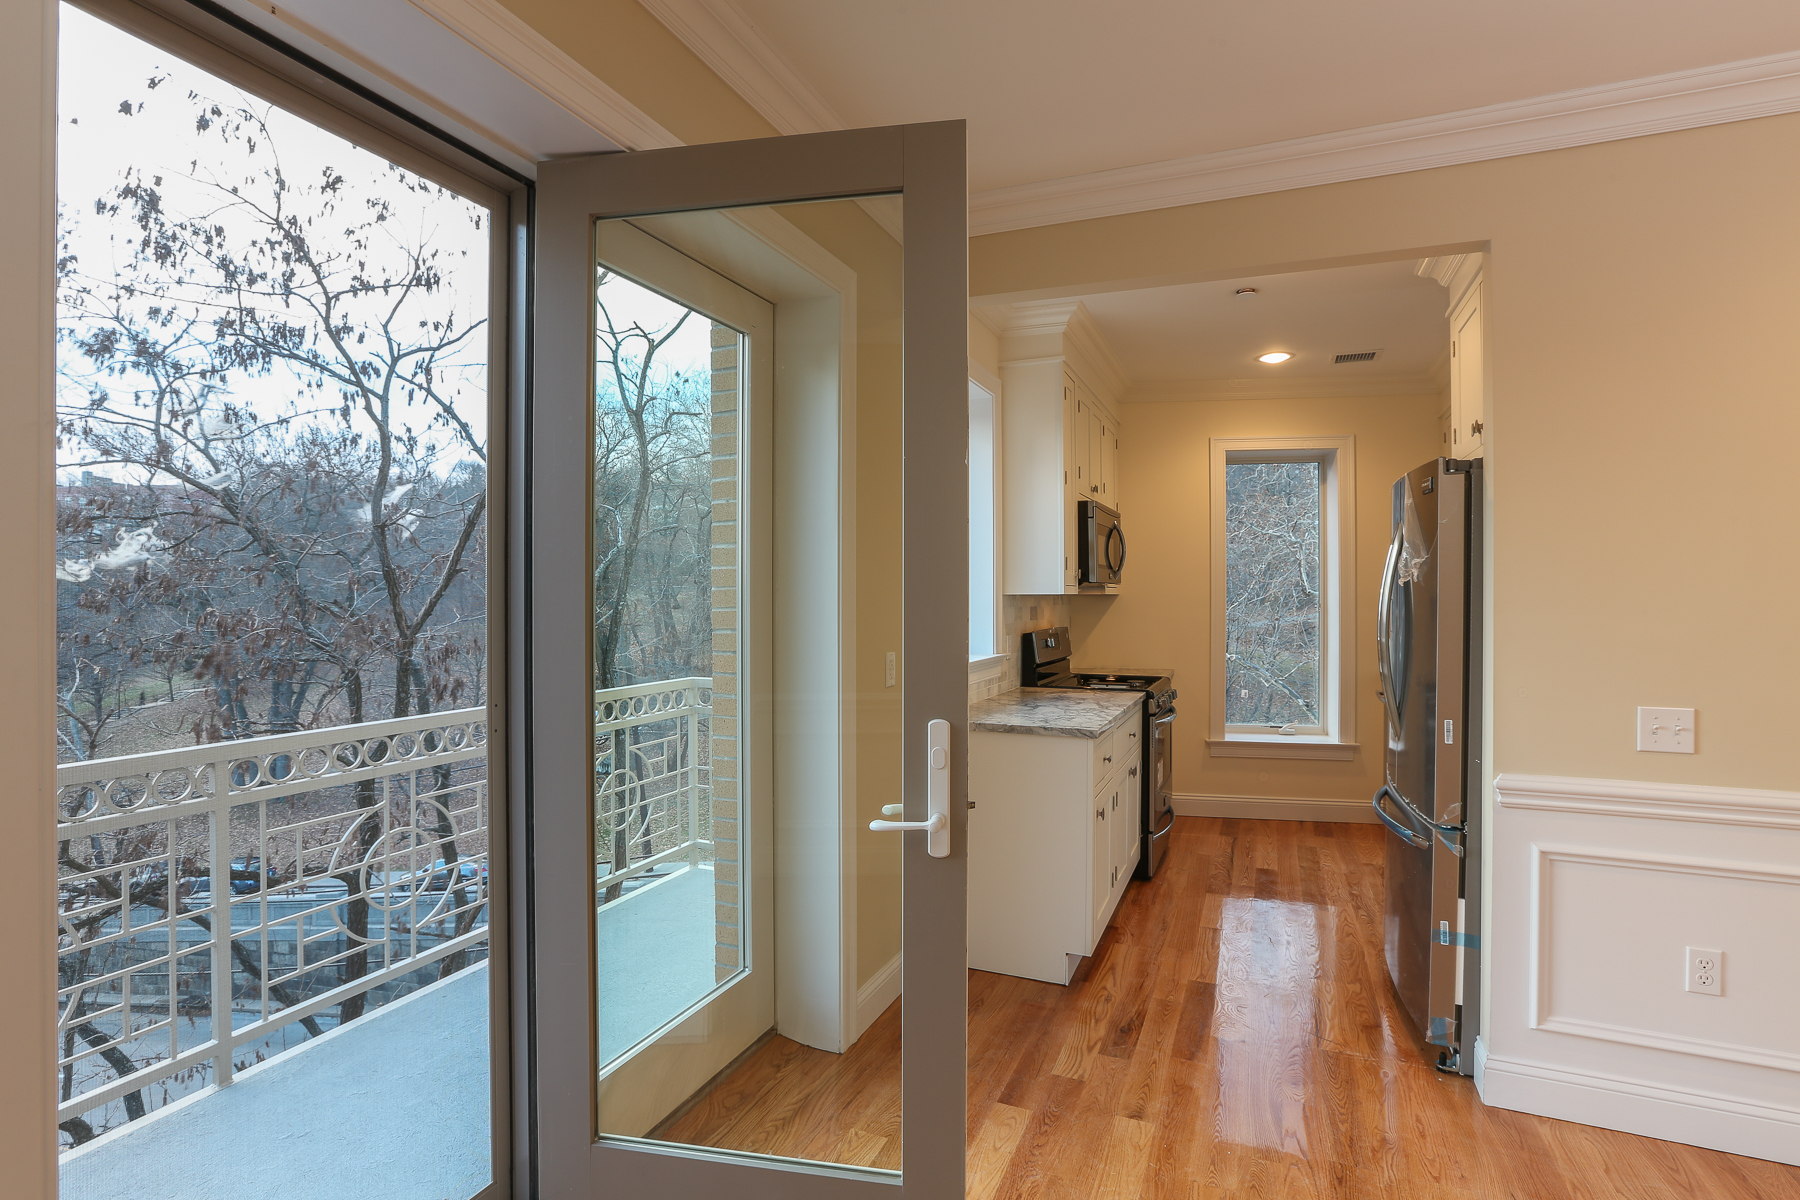 Apartment for Rent at Luxury, New and Spectacular 2 BR 3174 Riverdale Avenue 4A Riverdale, New York 10463 United States